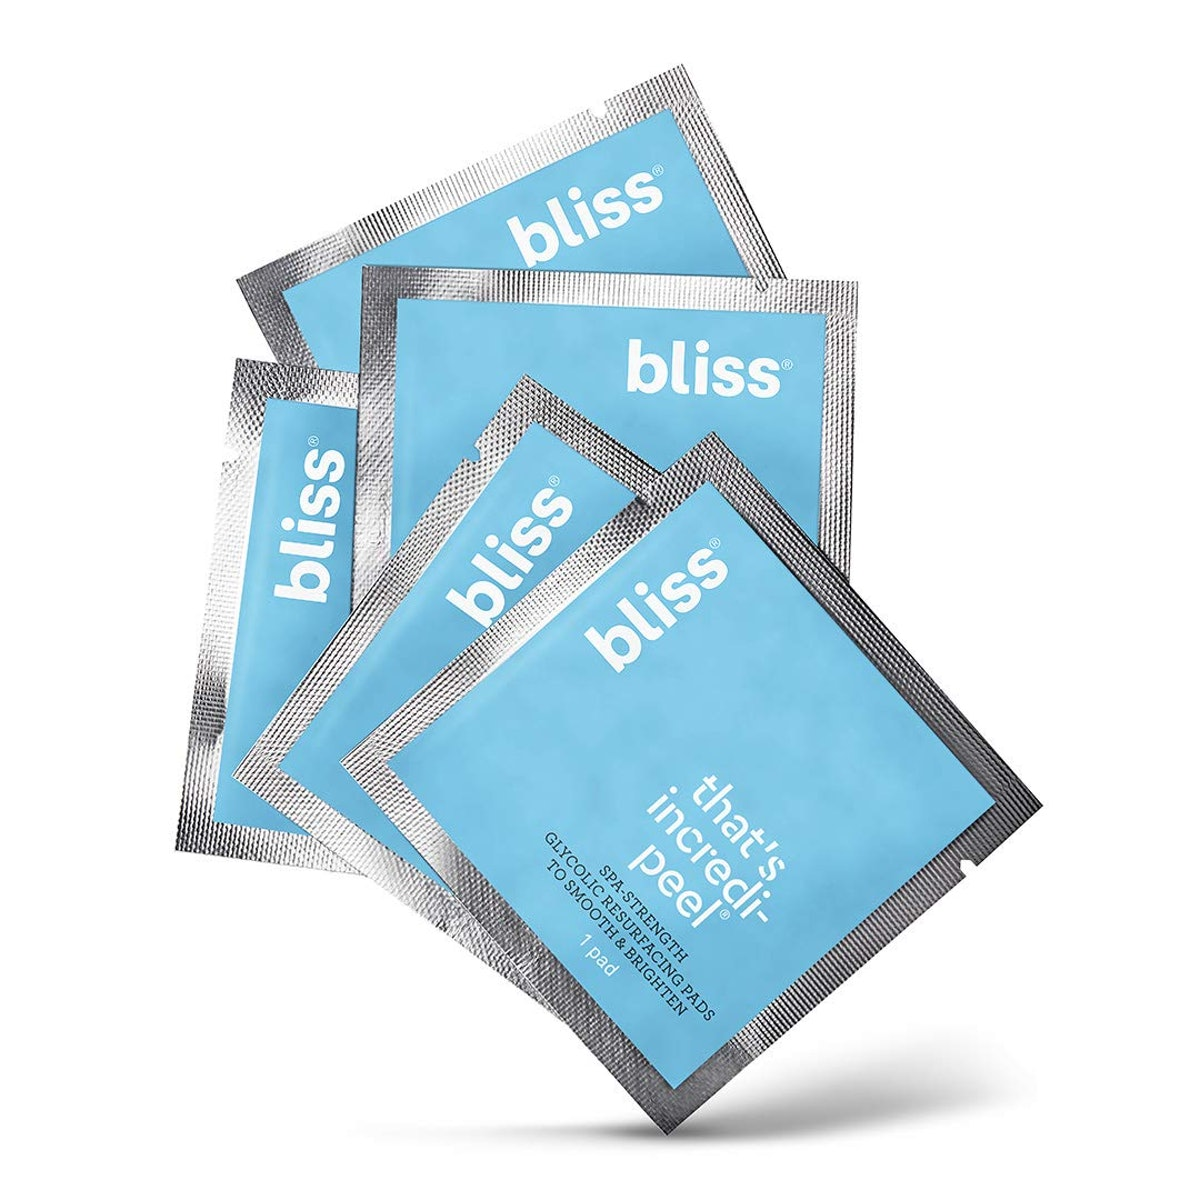 Bliss That's Incredi-Peel Glycolic Resurfacing Pads (5-Count)